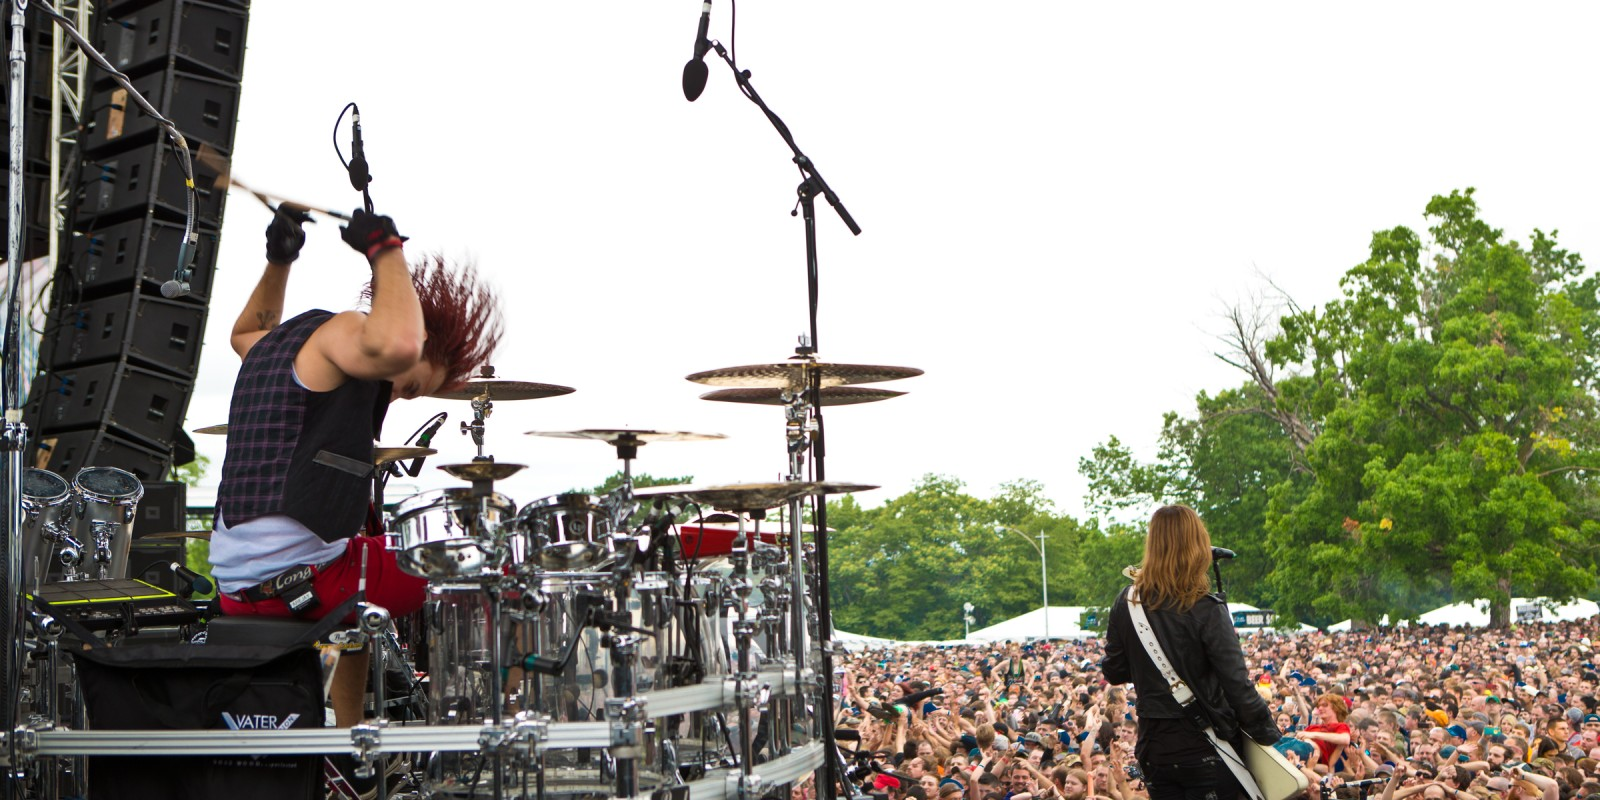 Halestorm at the 2015 Kansas City Rock Festival